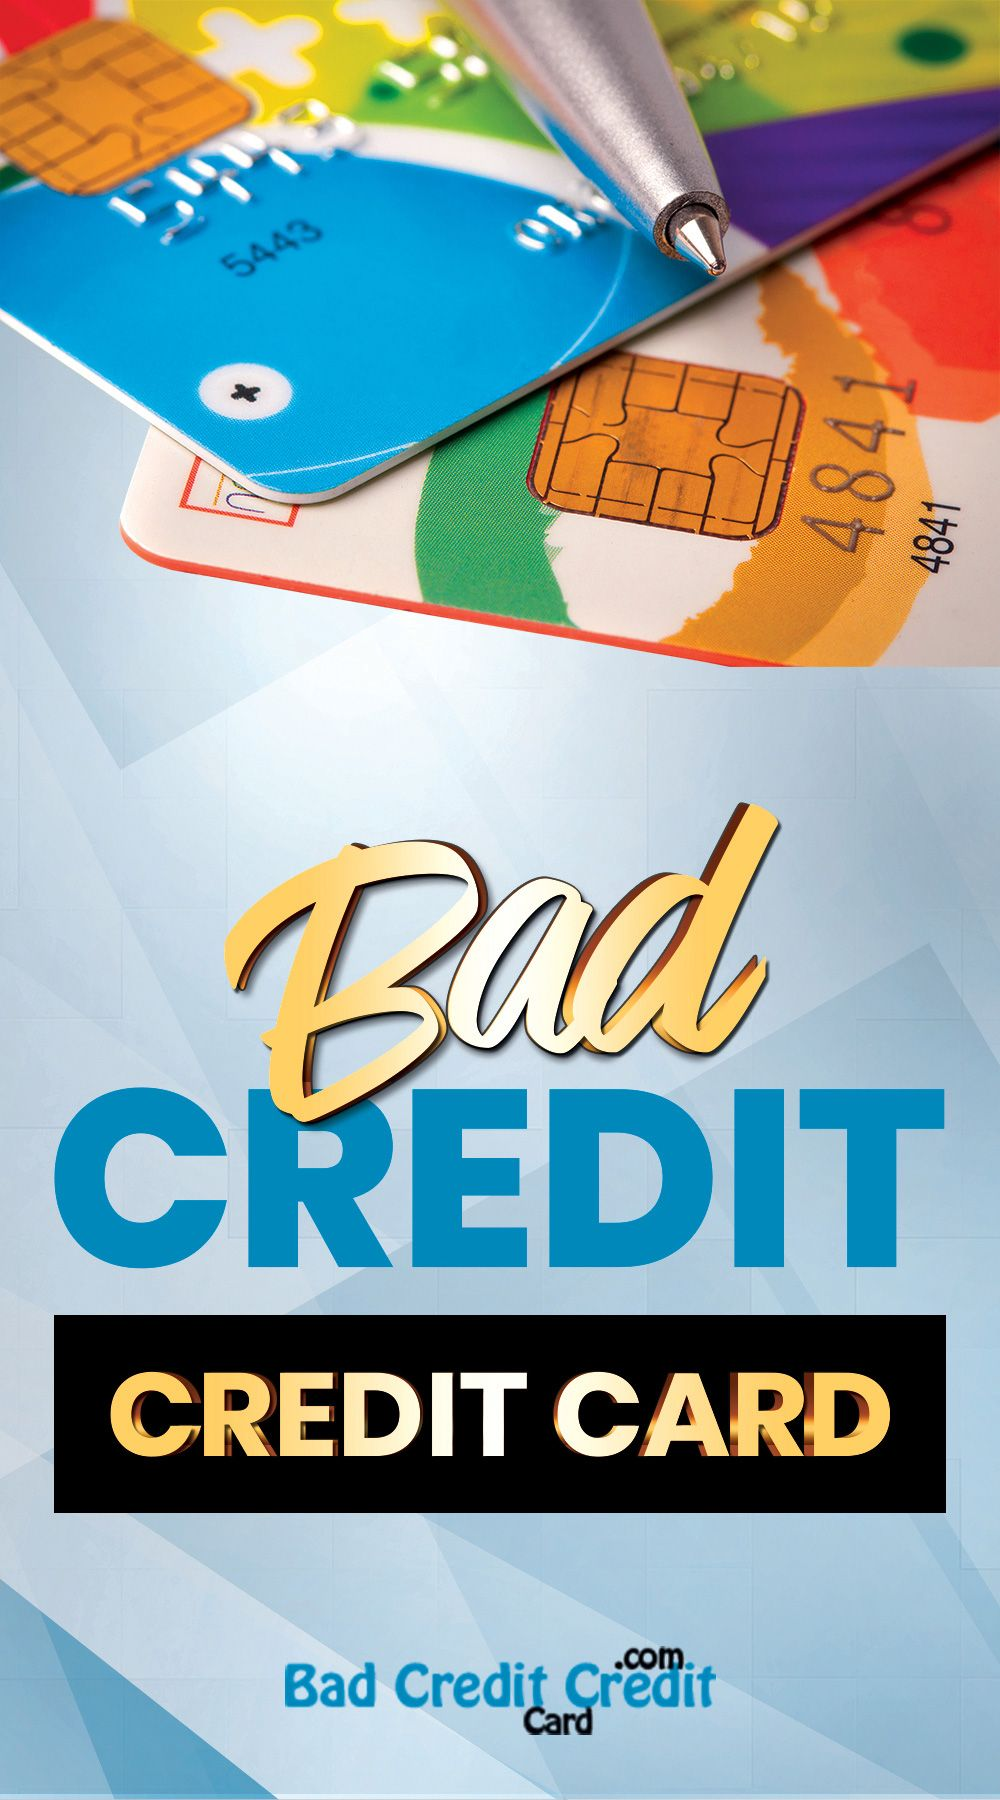 Bad Credit Credit Cards >> Bad Credit Credit Card Awful Credit Credit Cards Come In